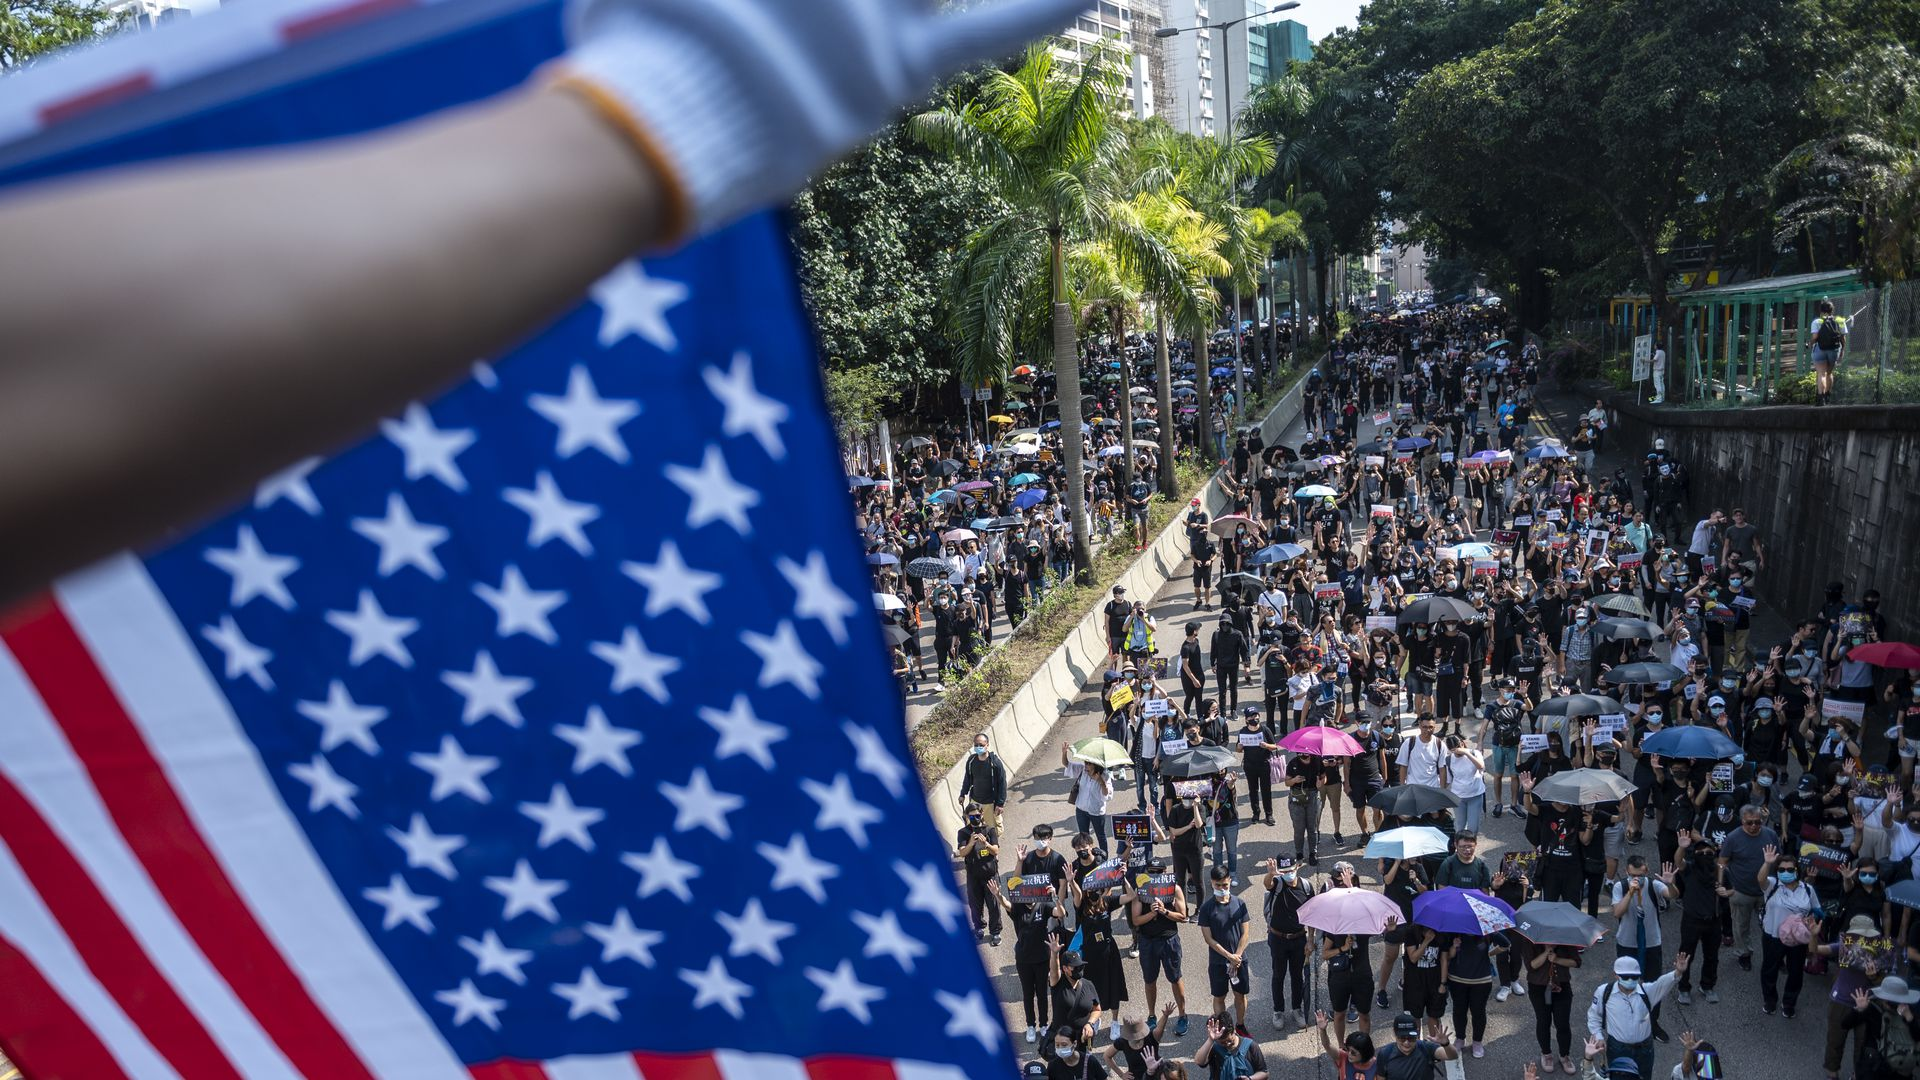 A Protester is seen holding up a US Flag above other protester during an Anti-Government Protest in Tsim Sha Tsui district in Hong Kong, China, October 20